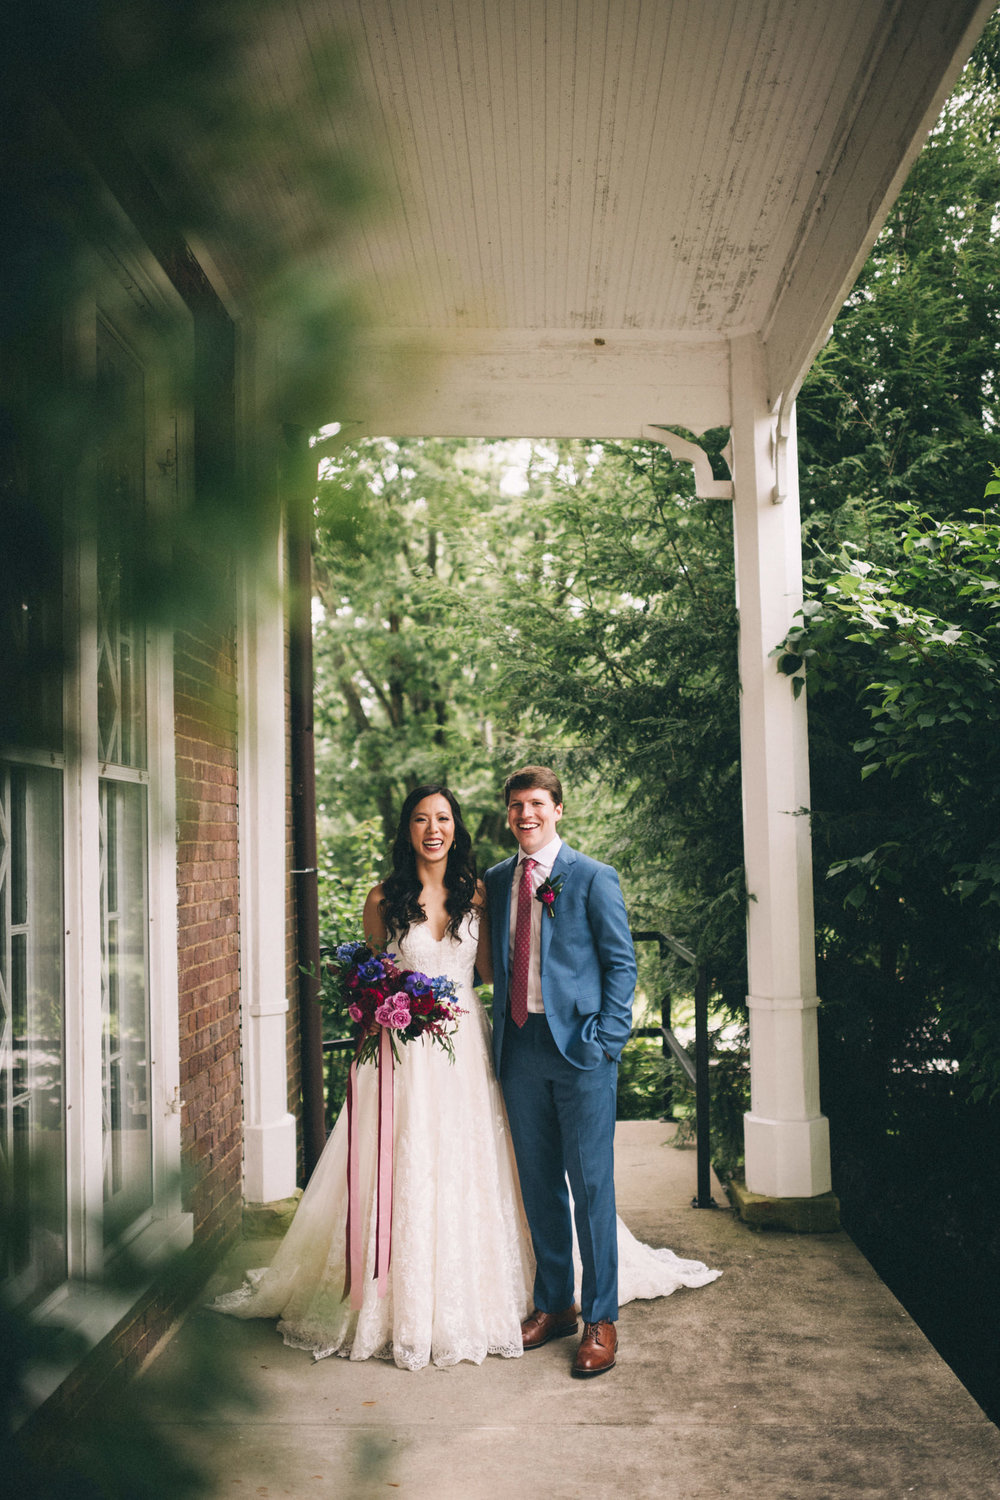 Louisville-Kentucky-Wedding-and-Elopement-Photographer-Sarah-Katherine-Davis-Photography-Summer-Jewel-Toned-Wedding-Chineese-Tea-Ceremony-Warrenwood-Manor-Danville-202.jpg